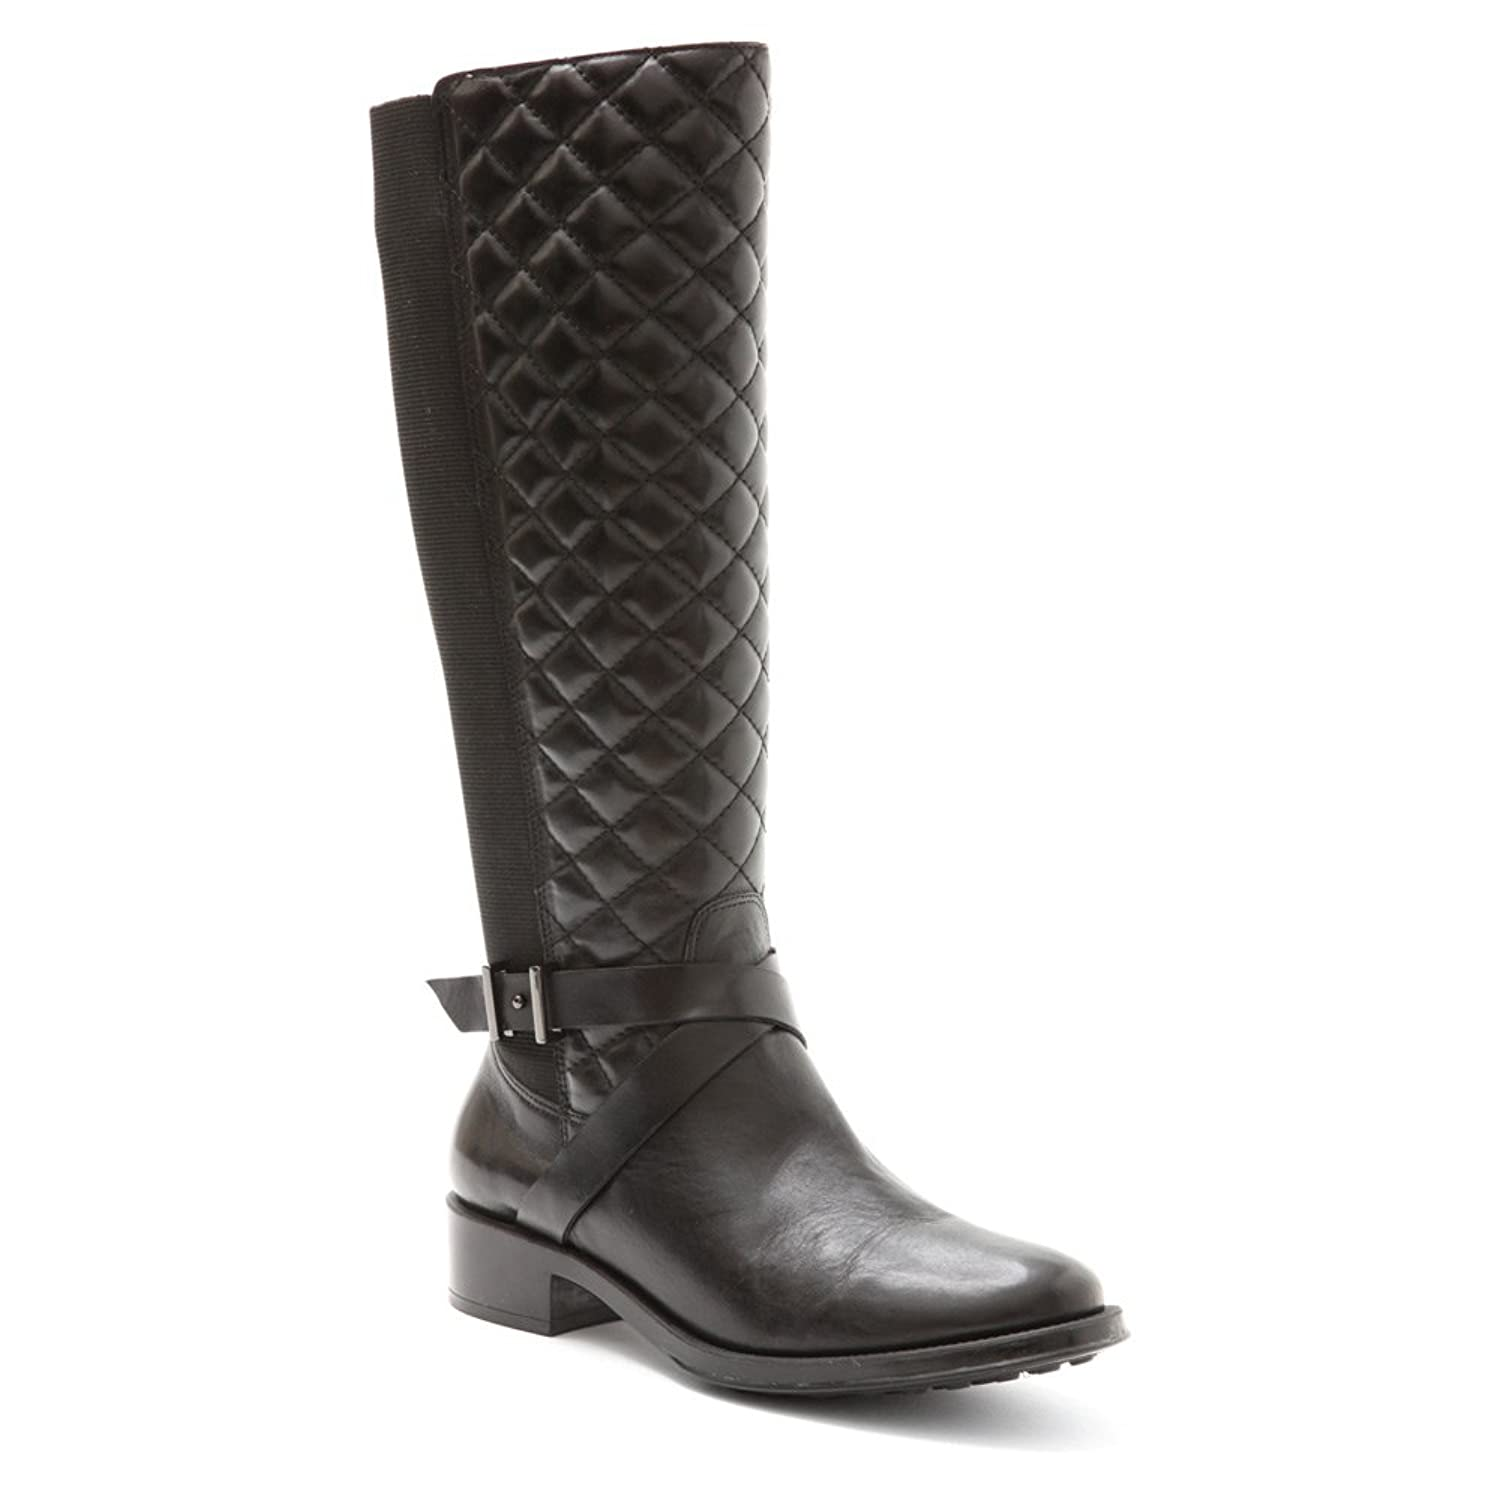 Andre Assous Women's Seabiscuit Quilted Waterproof